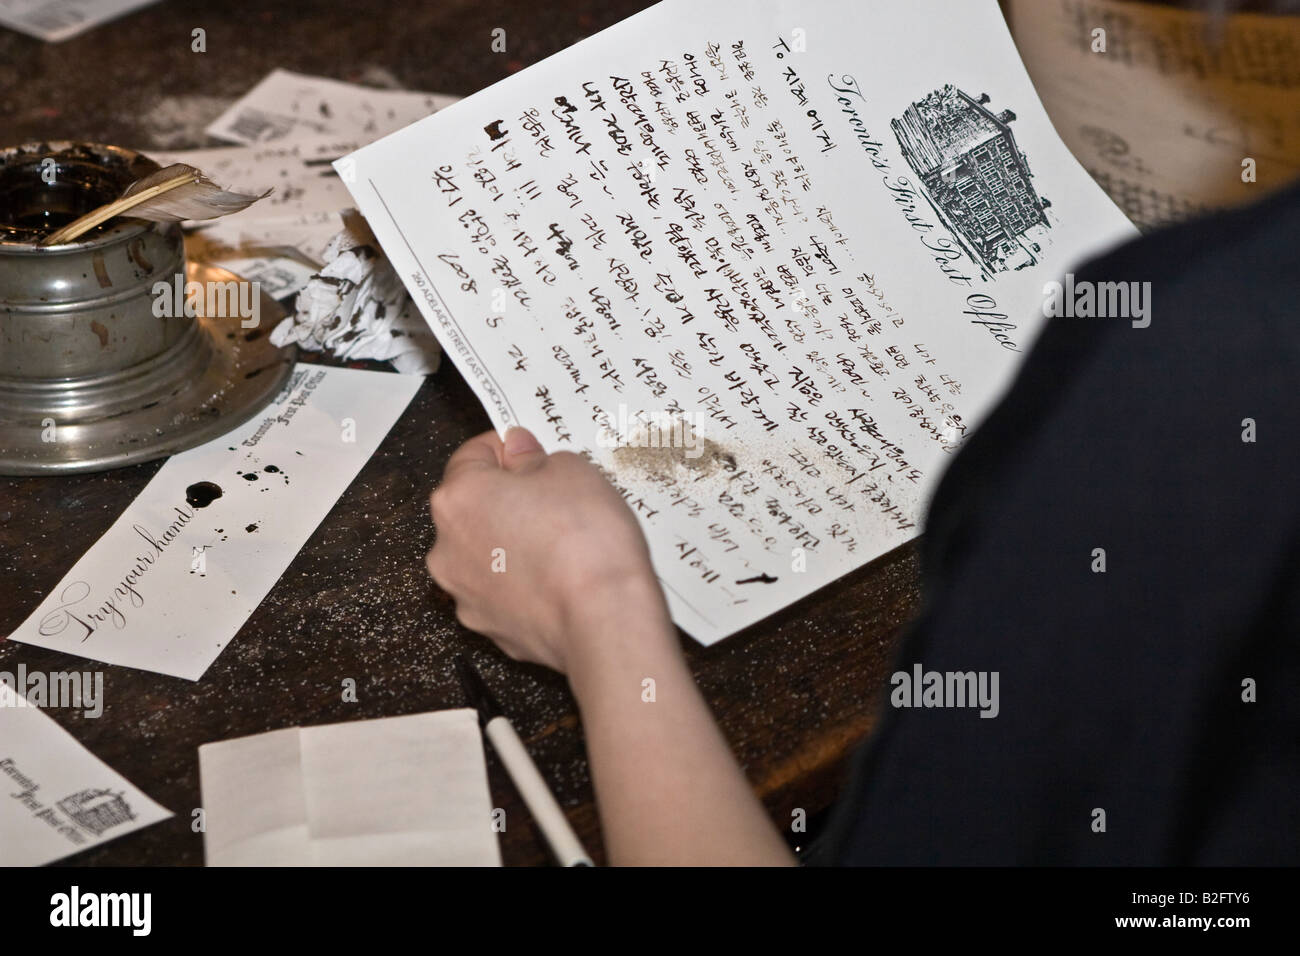 Drying letter written with a quill pen and ink - Stock Image